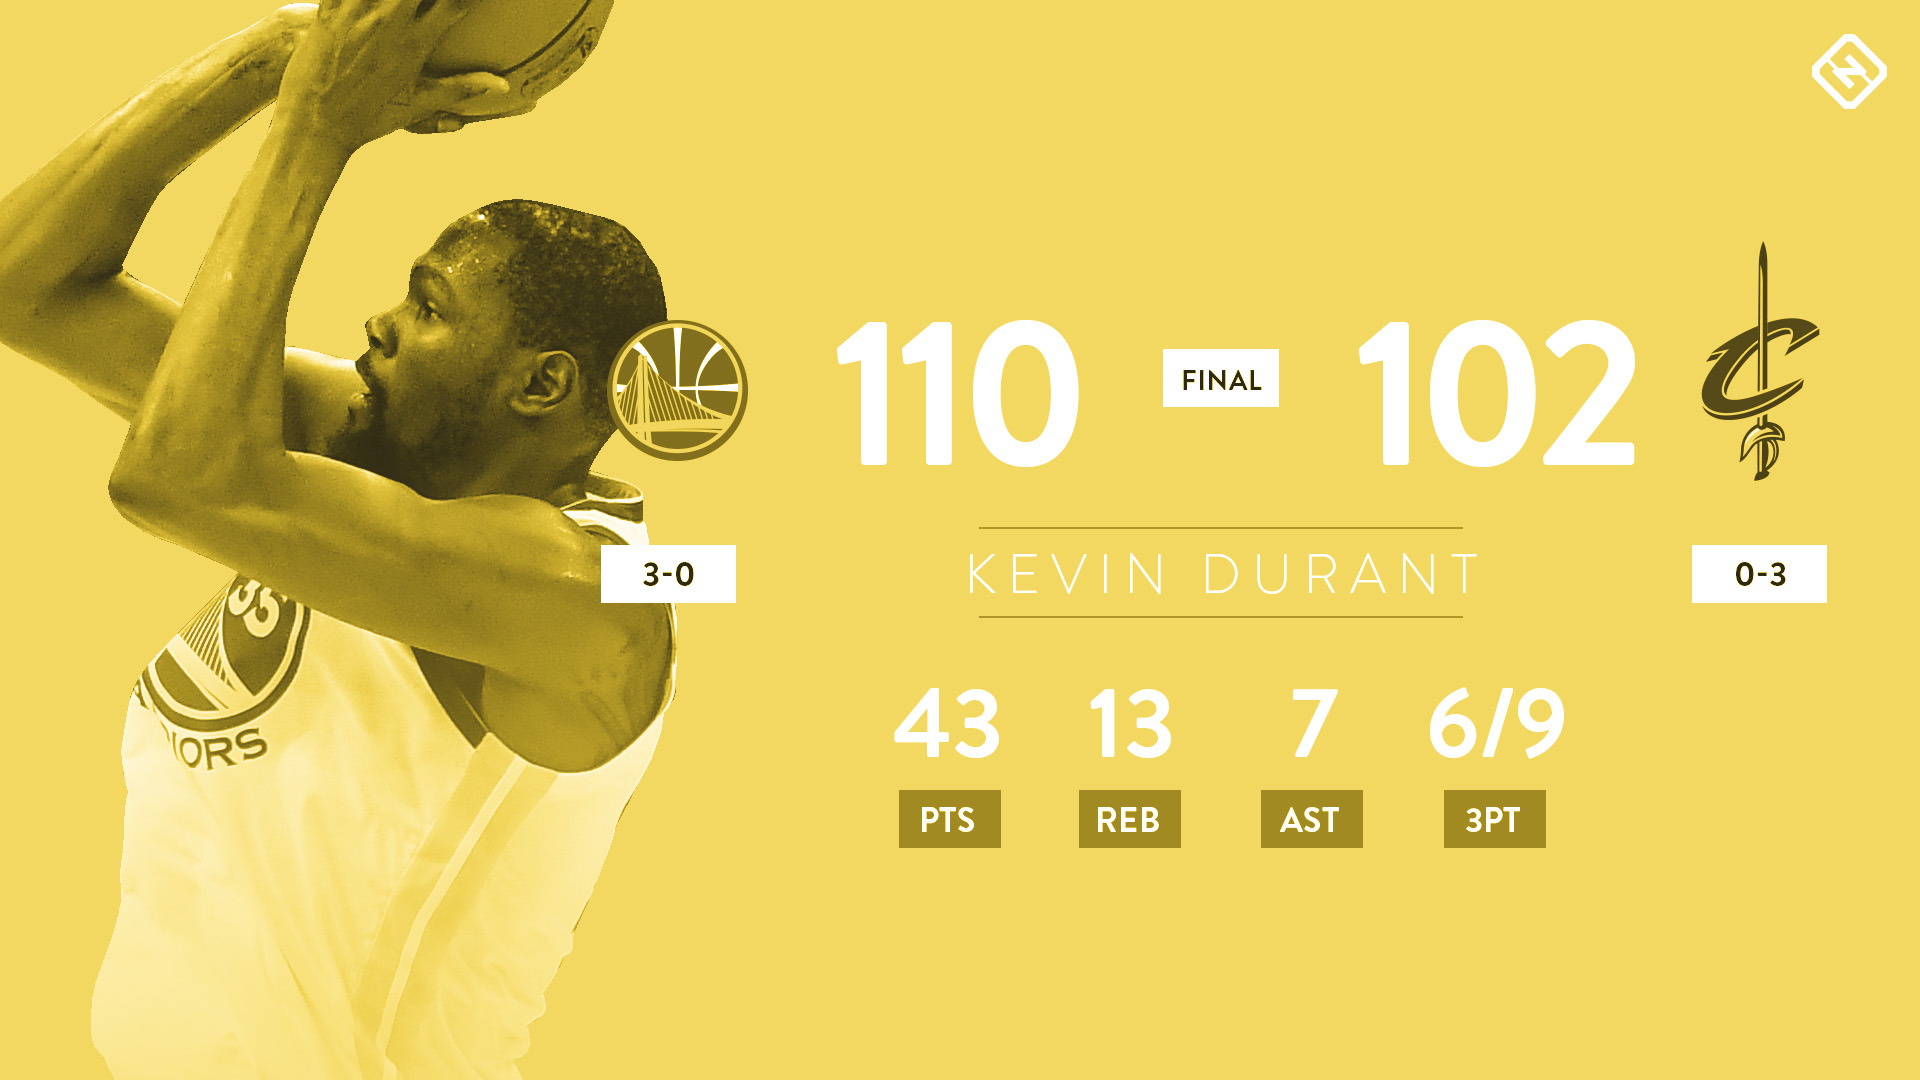 kevin-durant-game-3-stats-060718.jpg